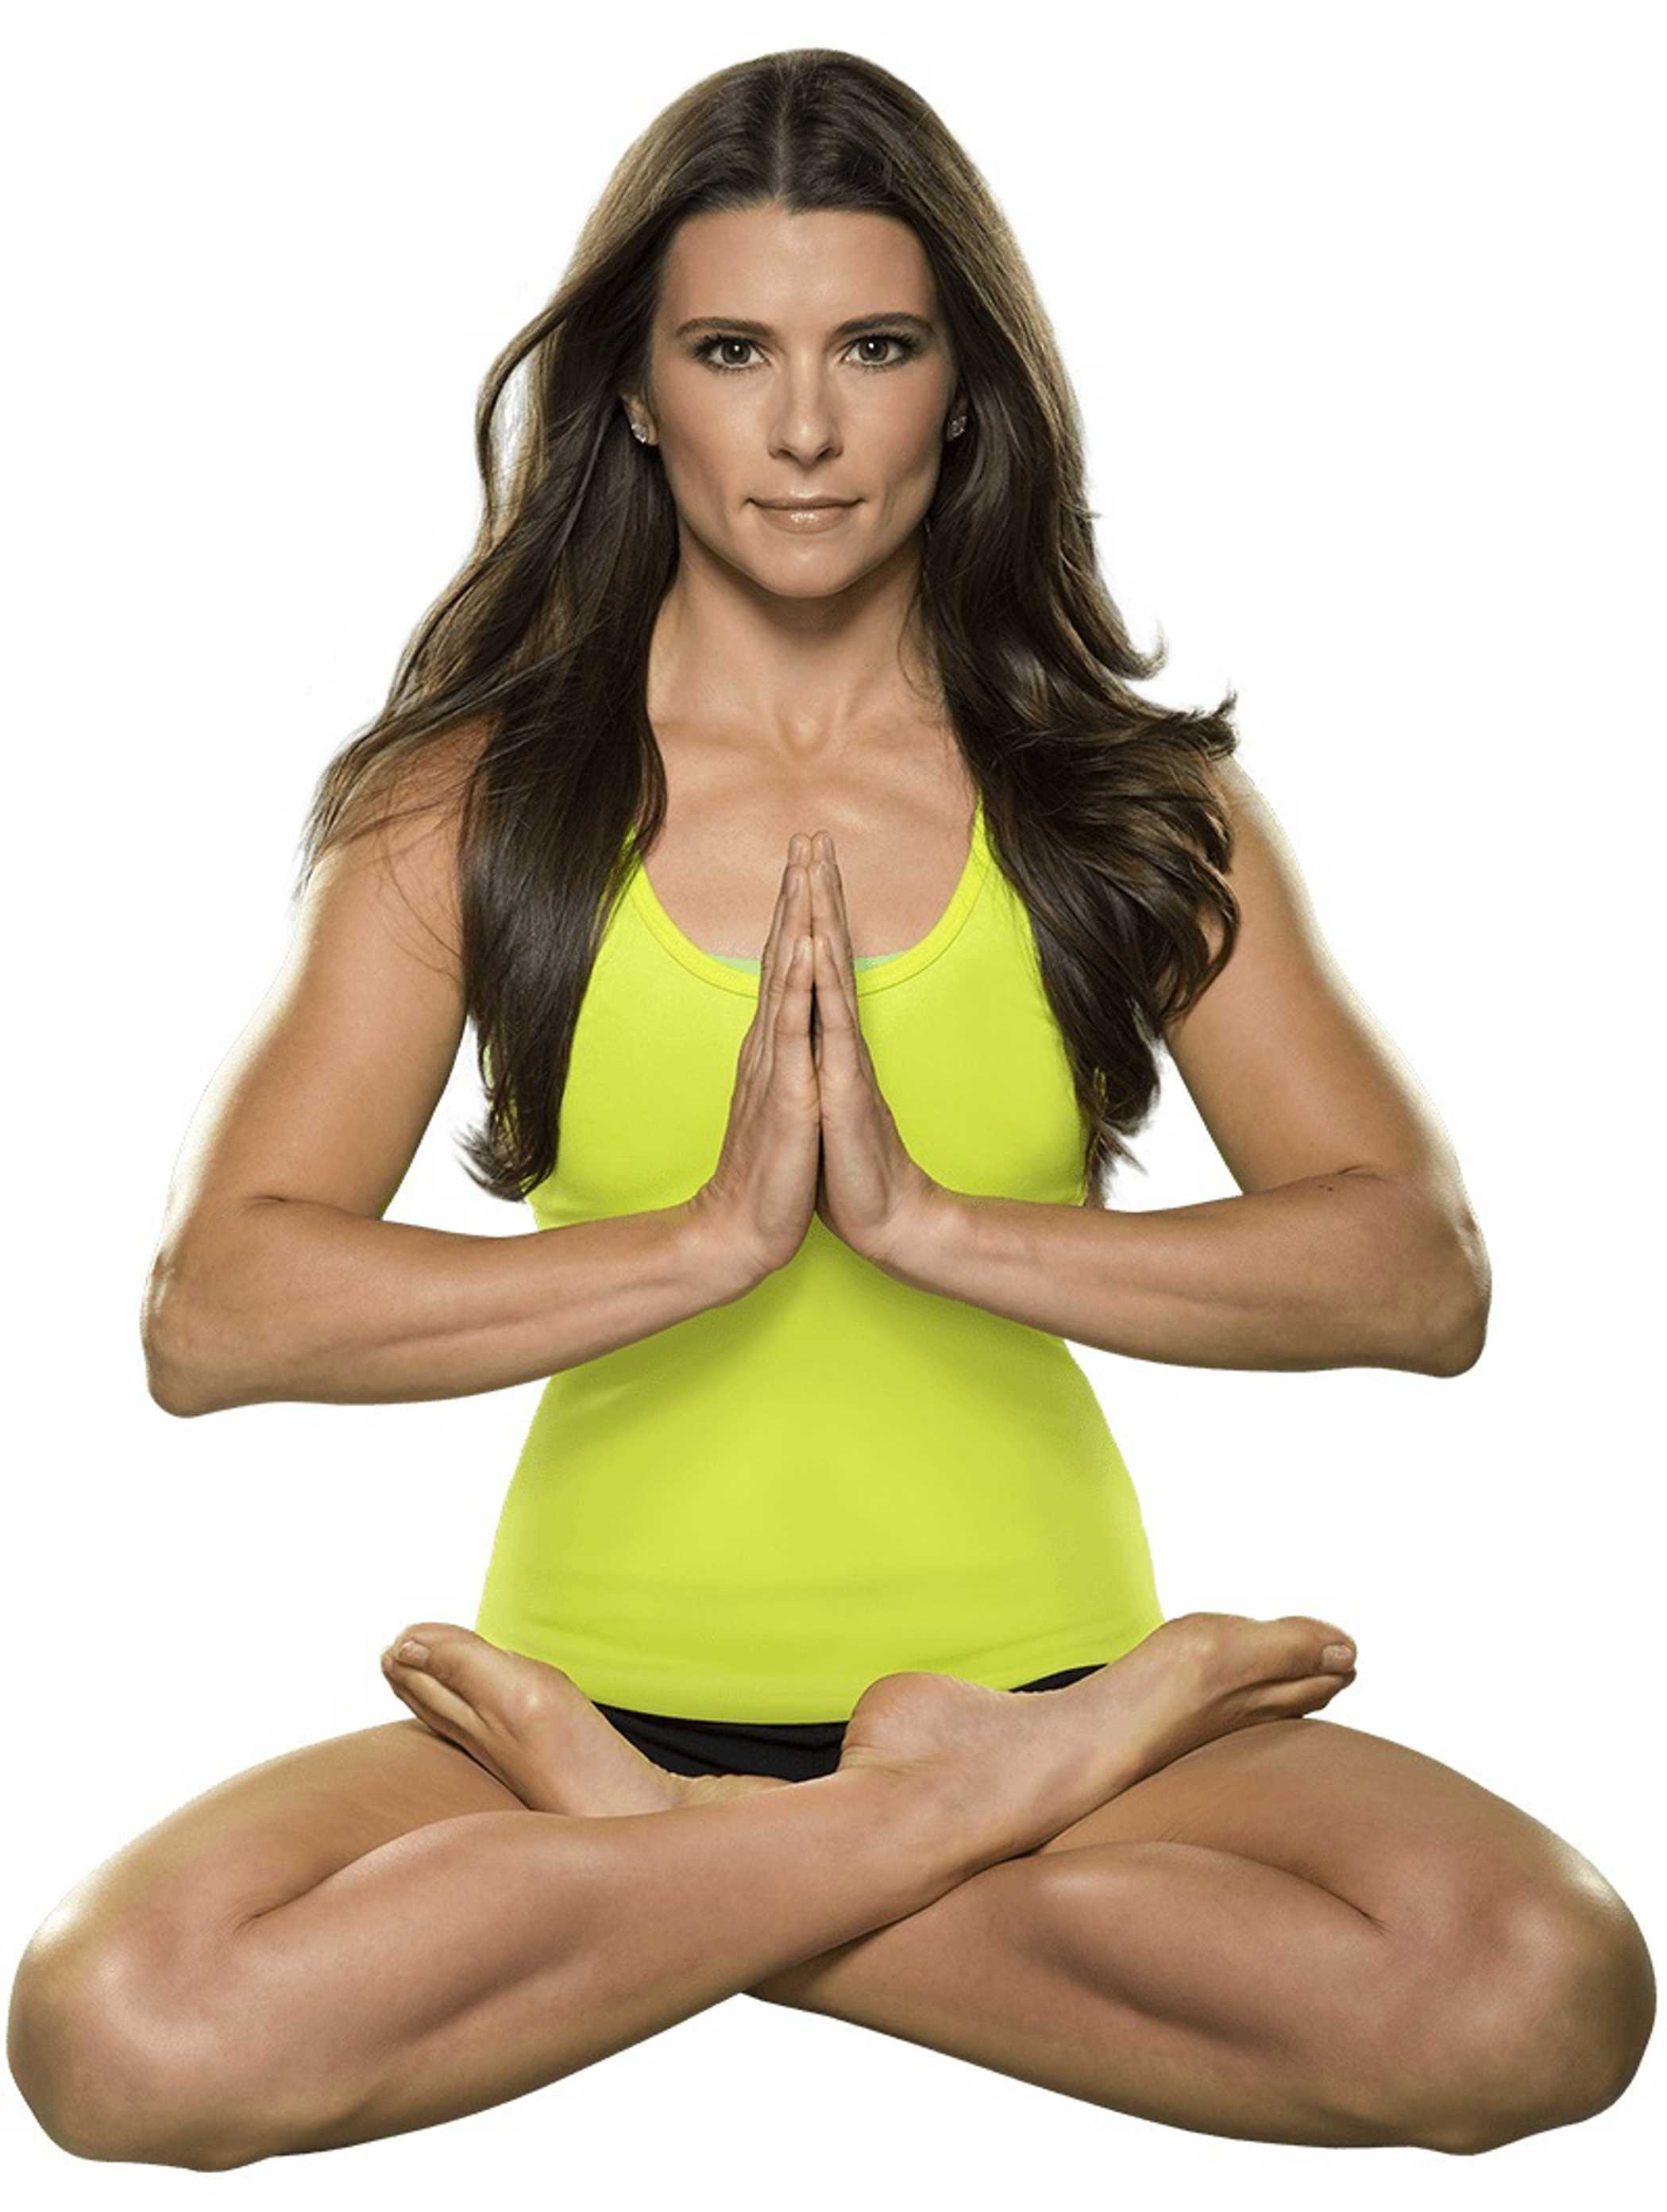 49 Sexy Danica Patrick Feet Pictures Are Too Much For You To Handle | Best Of Comic Books